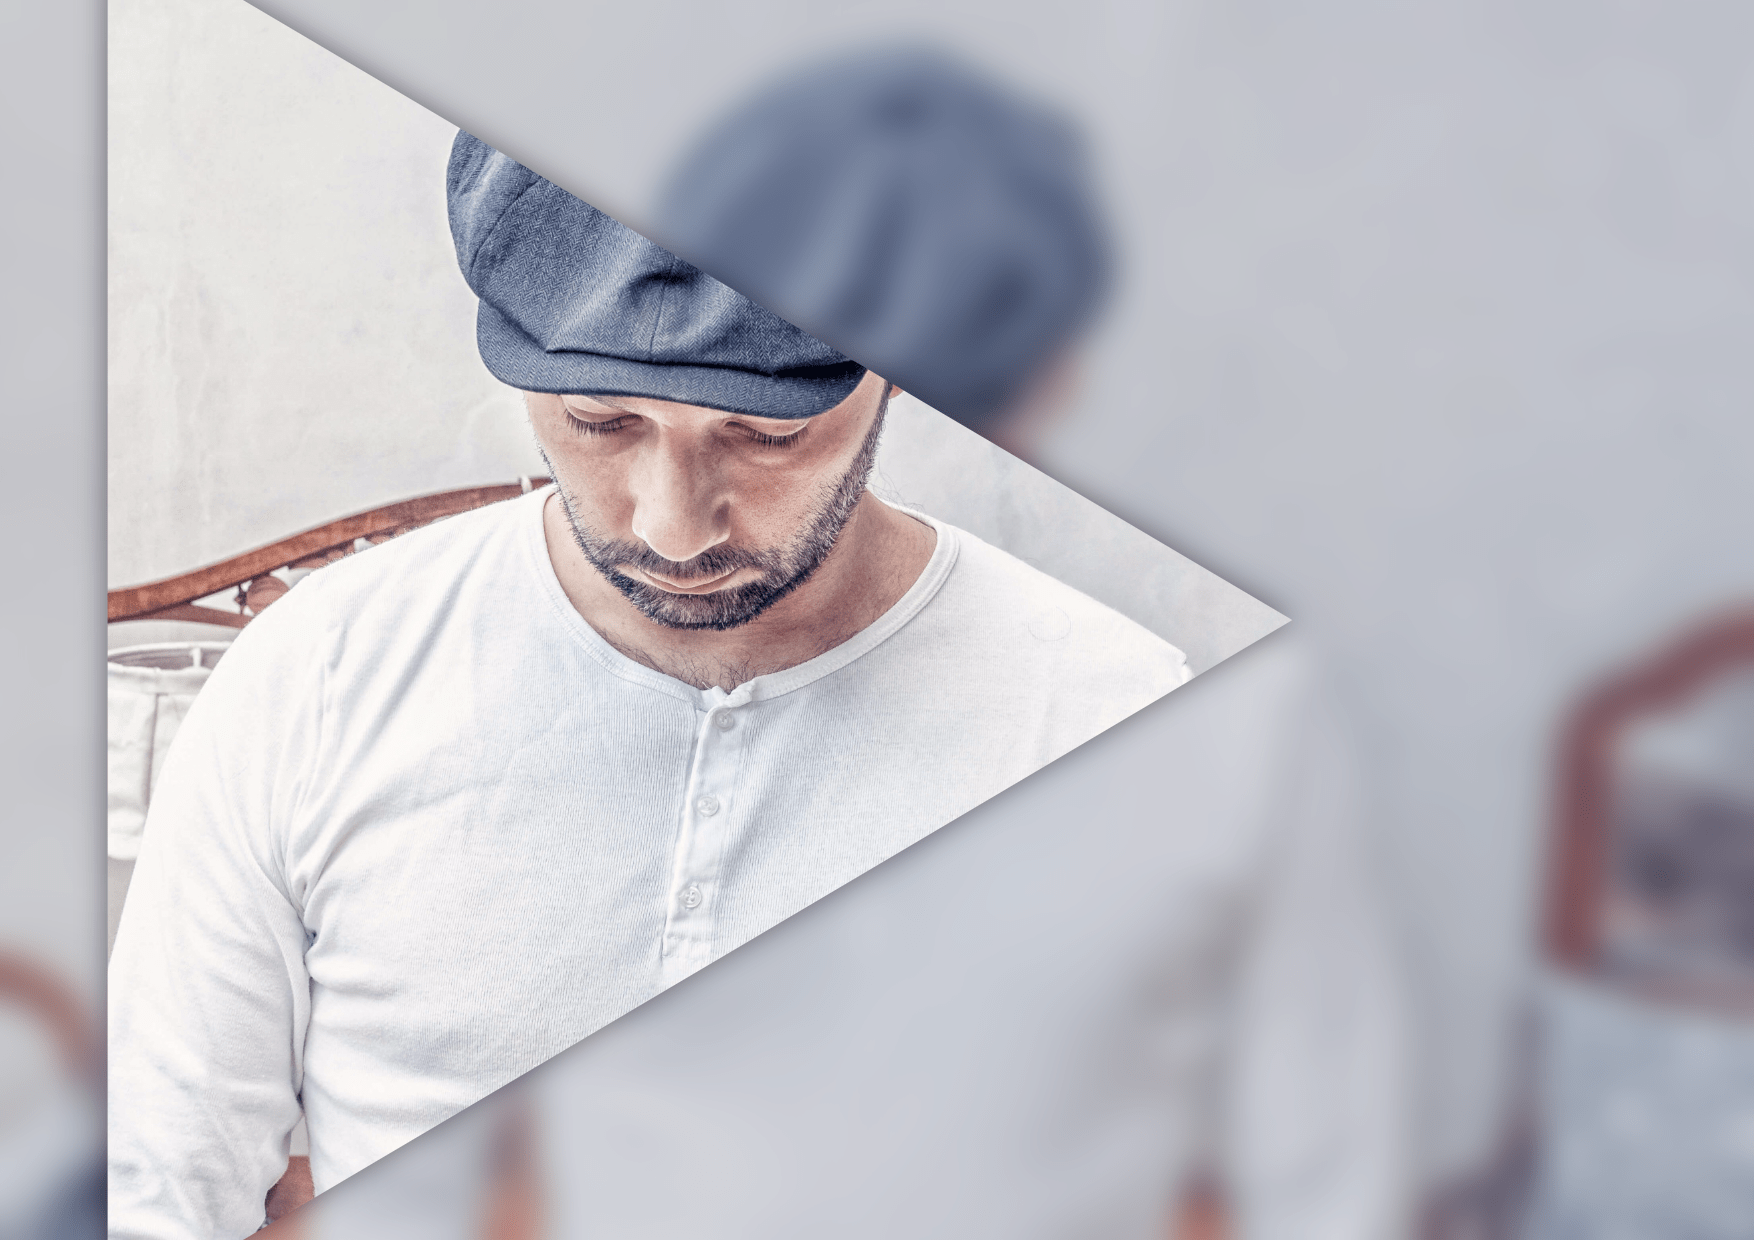 Person,                Clothing,                Professional,                Cap,                Brand,                Image,                Avatar,                White,                 Free Image